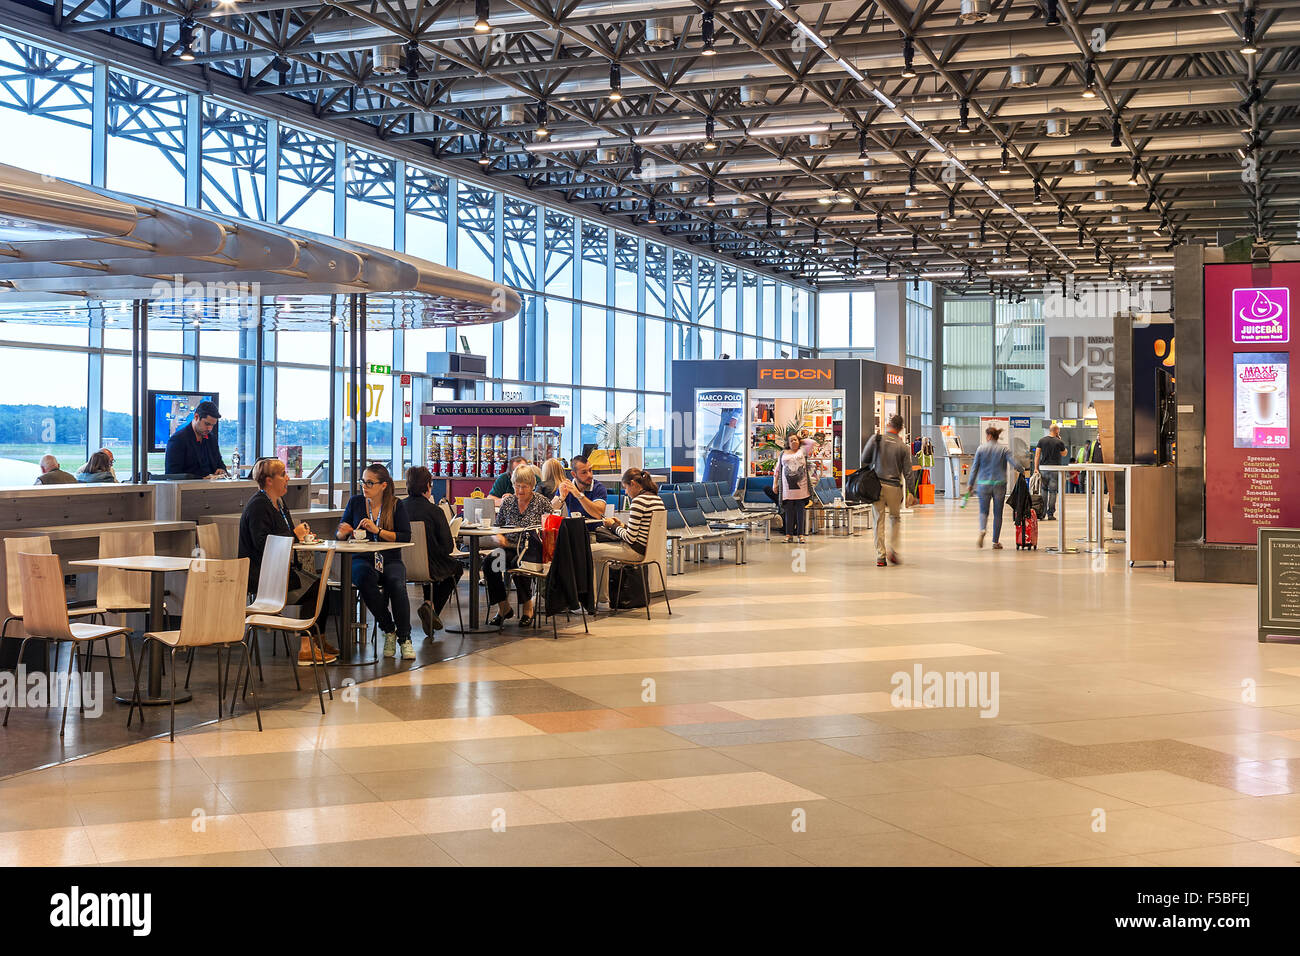 People sitting in café and walking inside Terminal 2 of ...